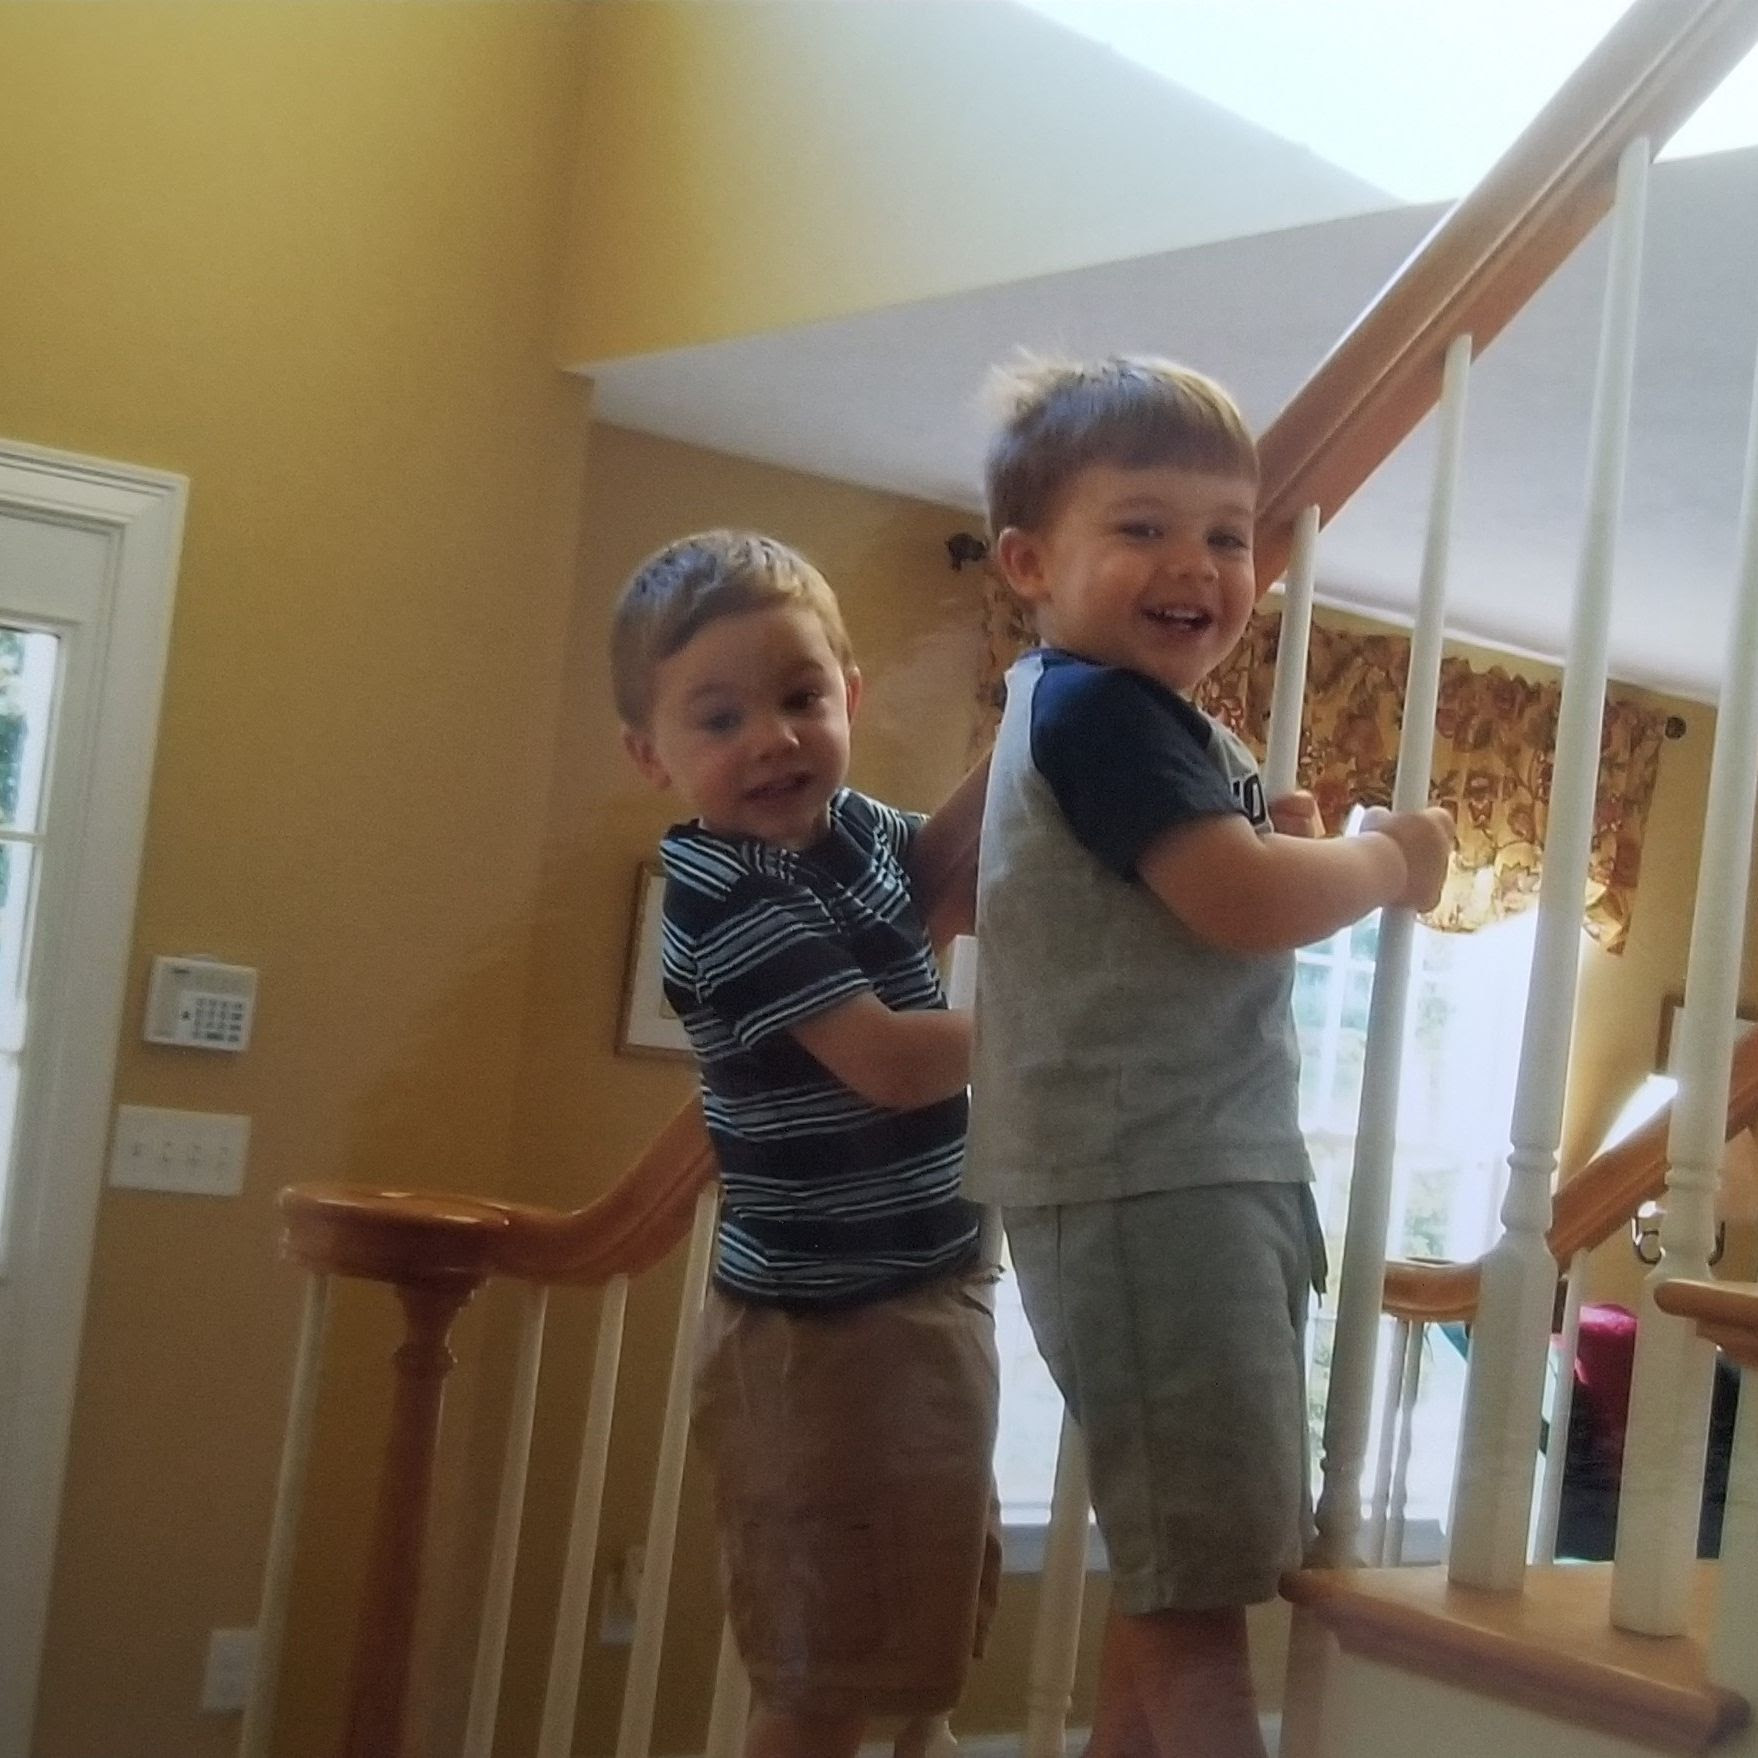 My boys climbing the wrong side of the stairs